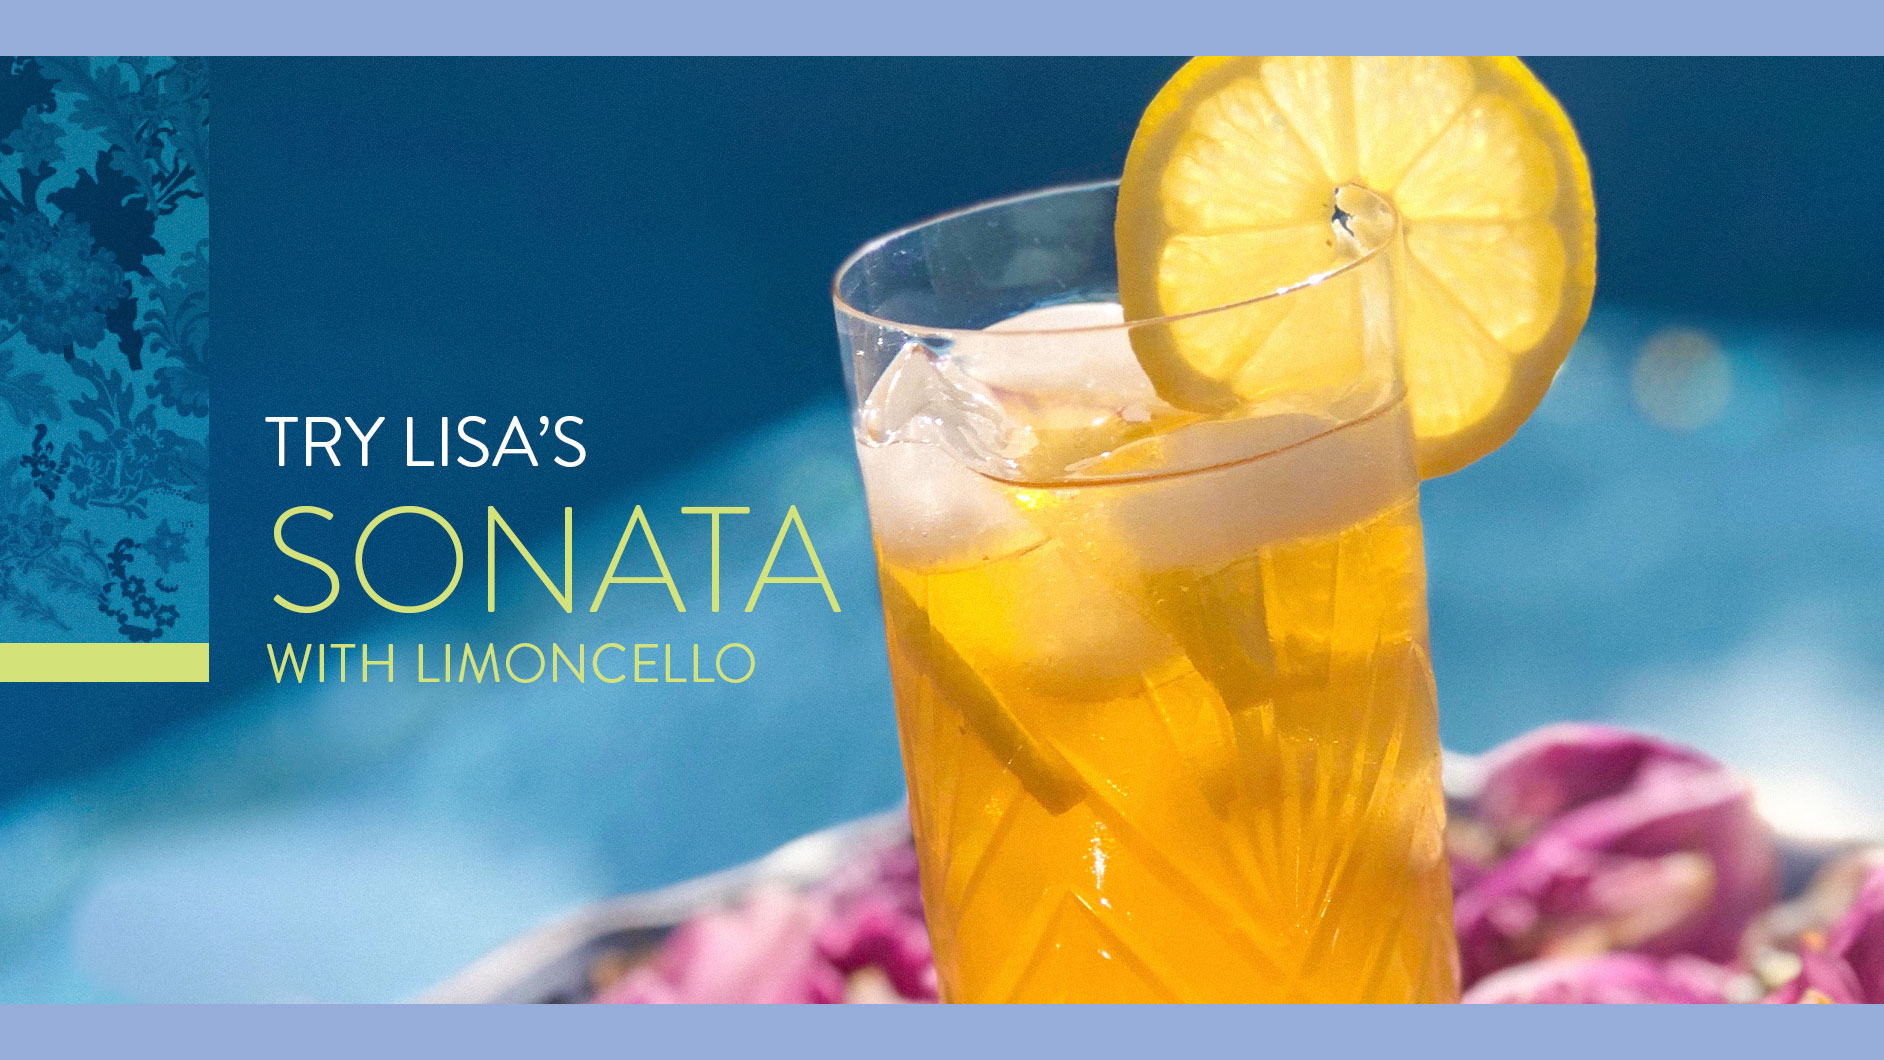 sonata-and-limoncello.jpg